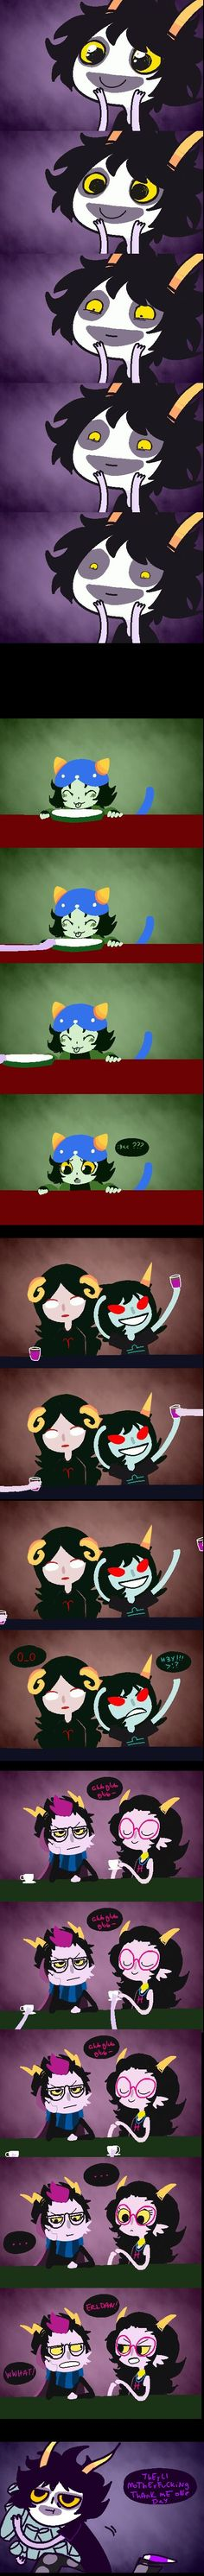 Homestuck- Gamzee XD the video is soo funny it's one of the Ask Gamzee's on YouTube